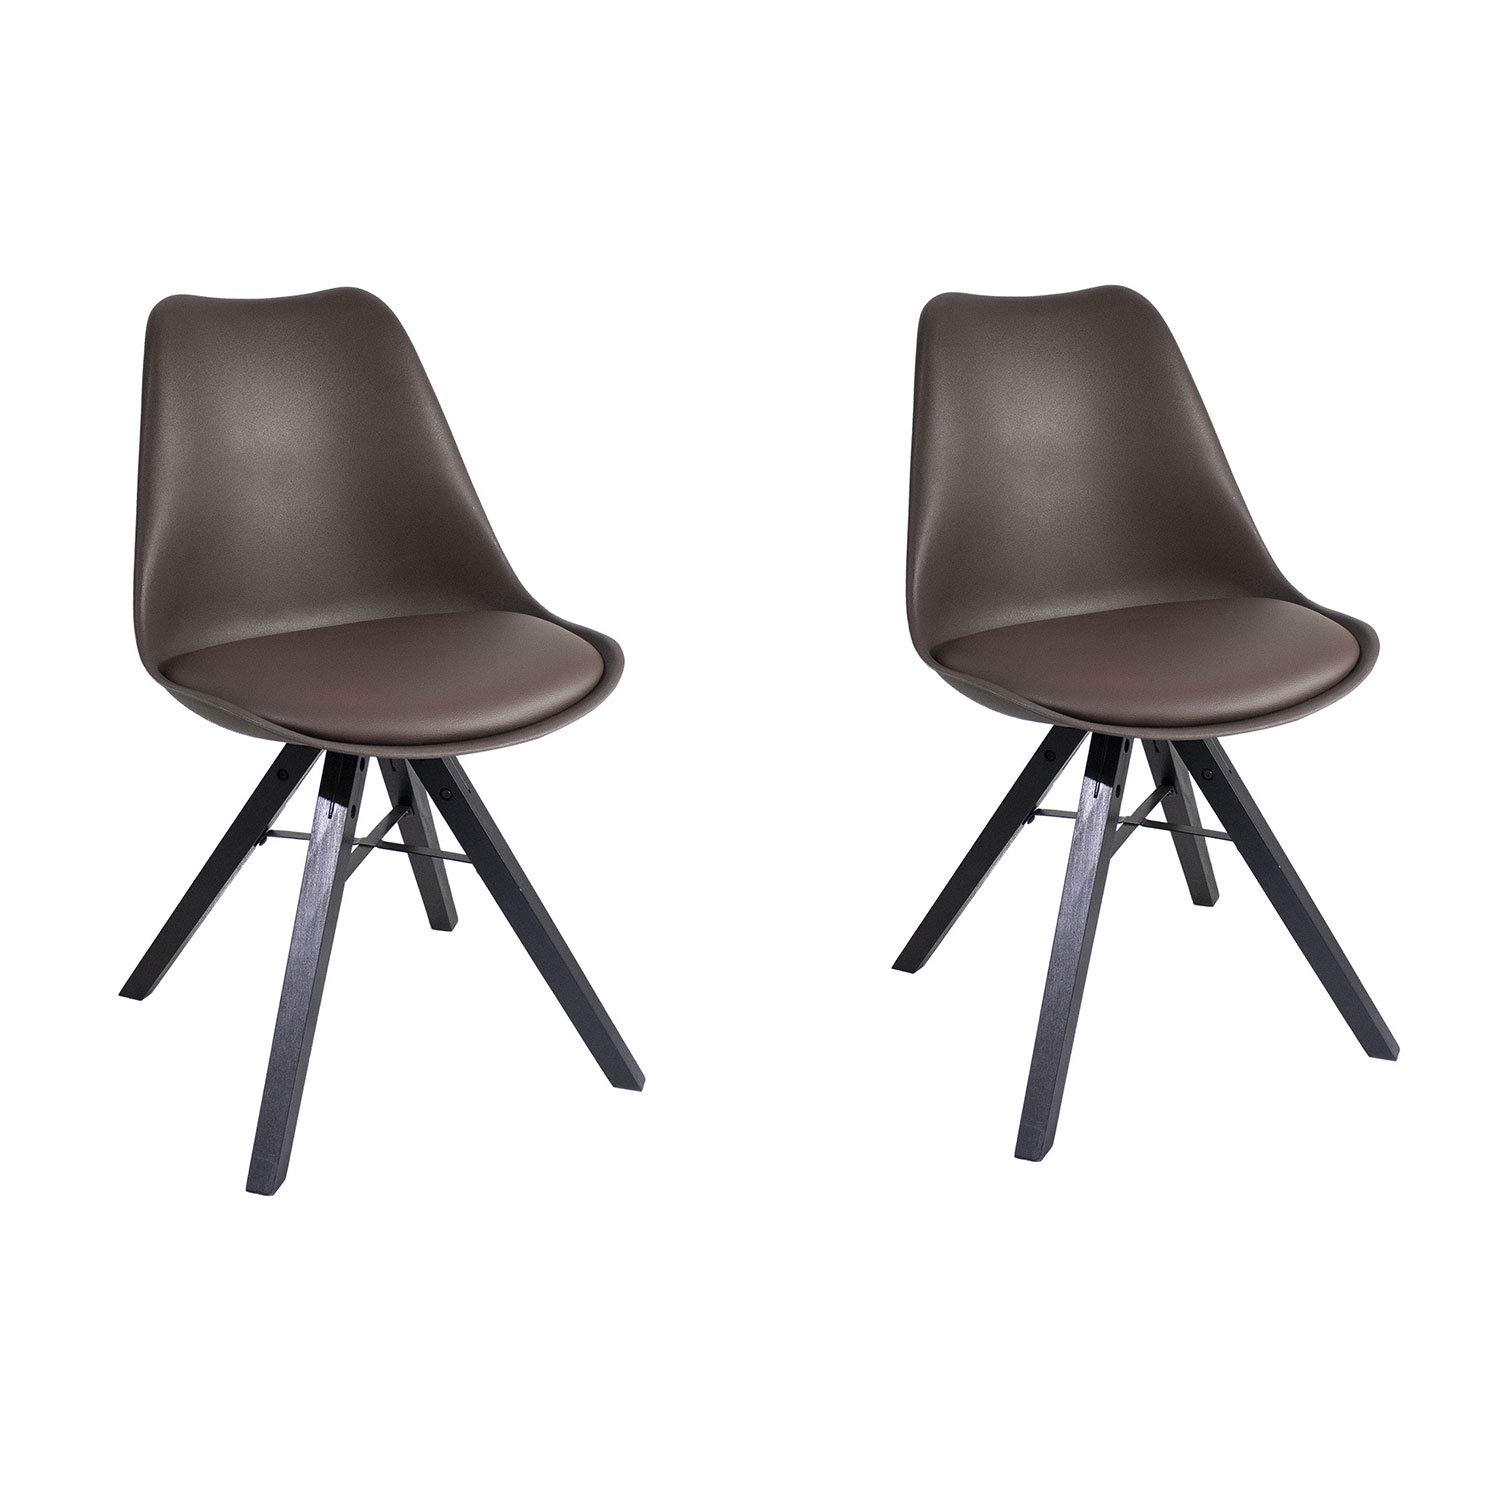 YUIKY Modern Dining Chair Set of 2 Padded Seat Natural Wood Legs Chair (Brown)